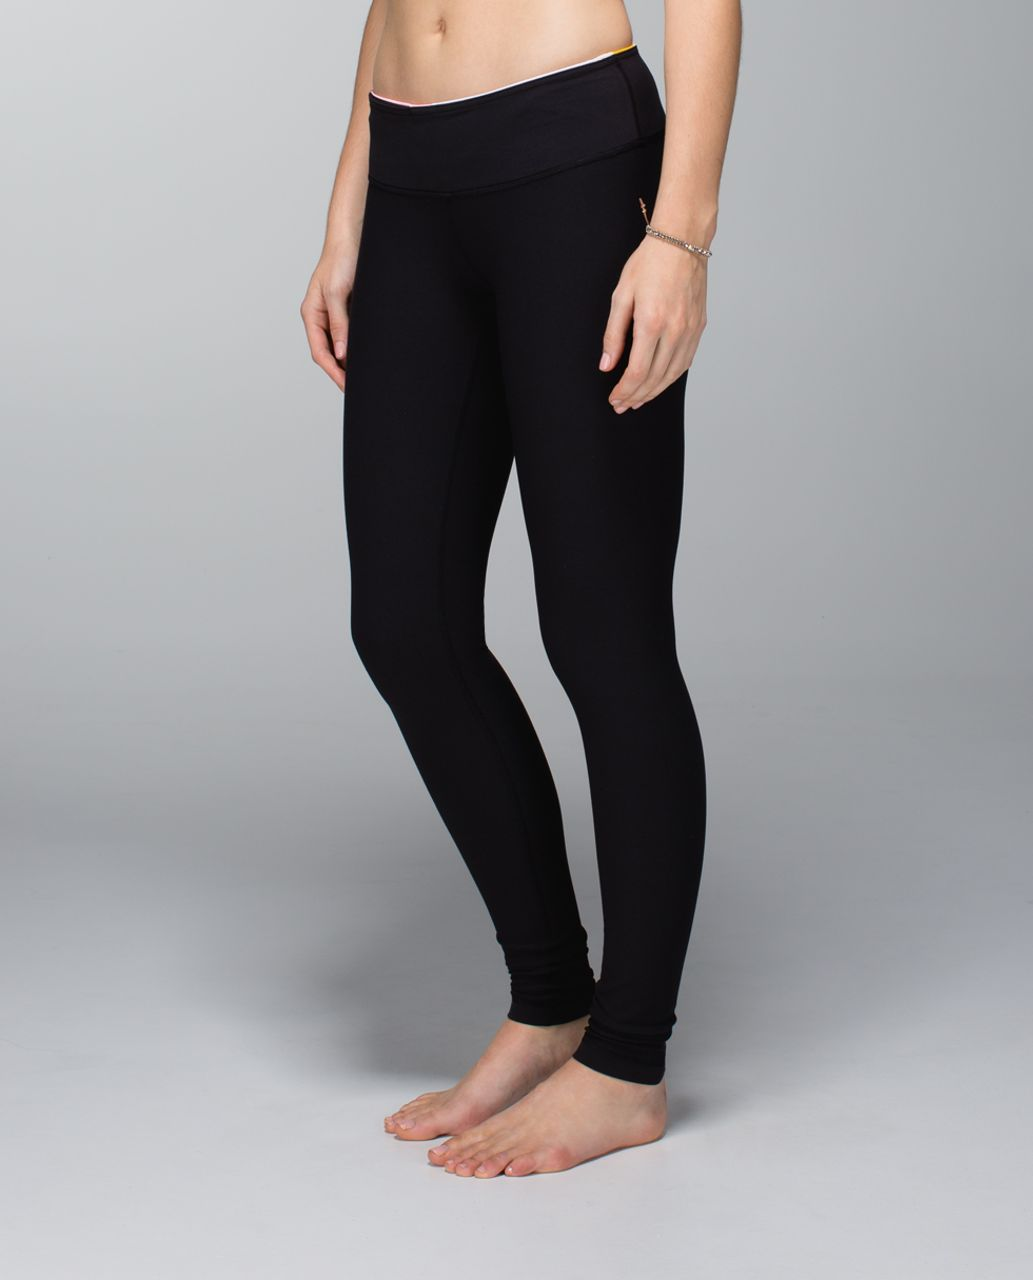 Lululemon Wunder Under Pant *Full-On Luon - Black / Su14 Quilt 1